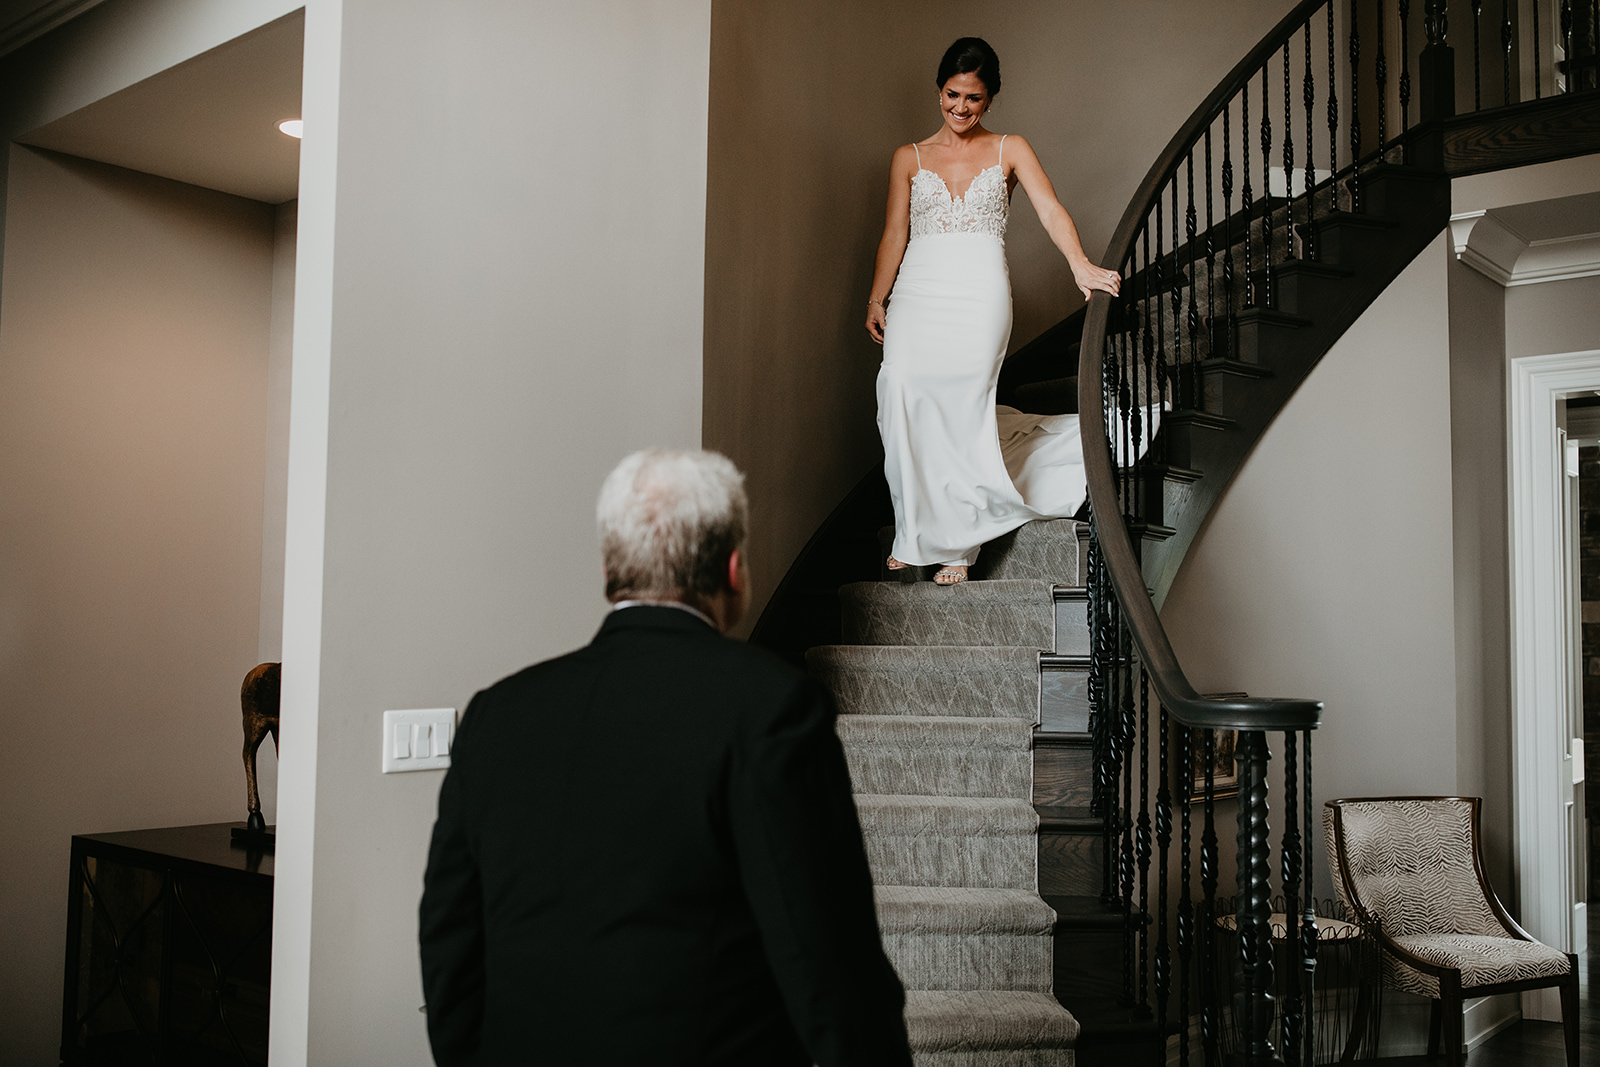 Pittsburghweddingphotography (151 of 1503).jpg